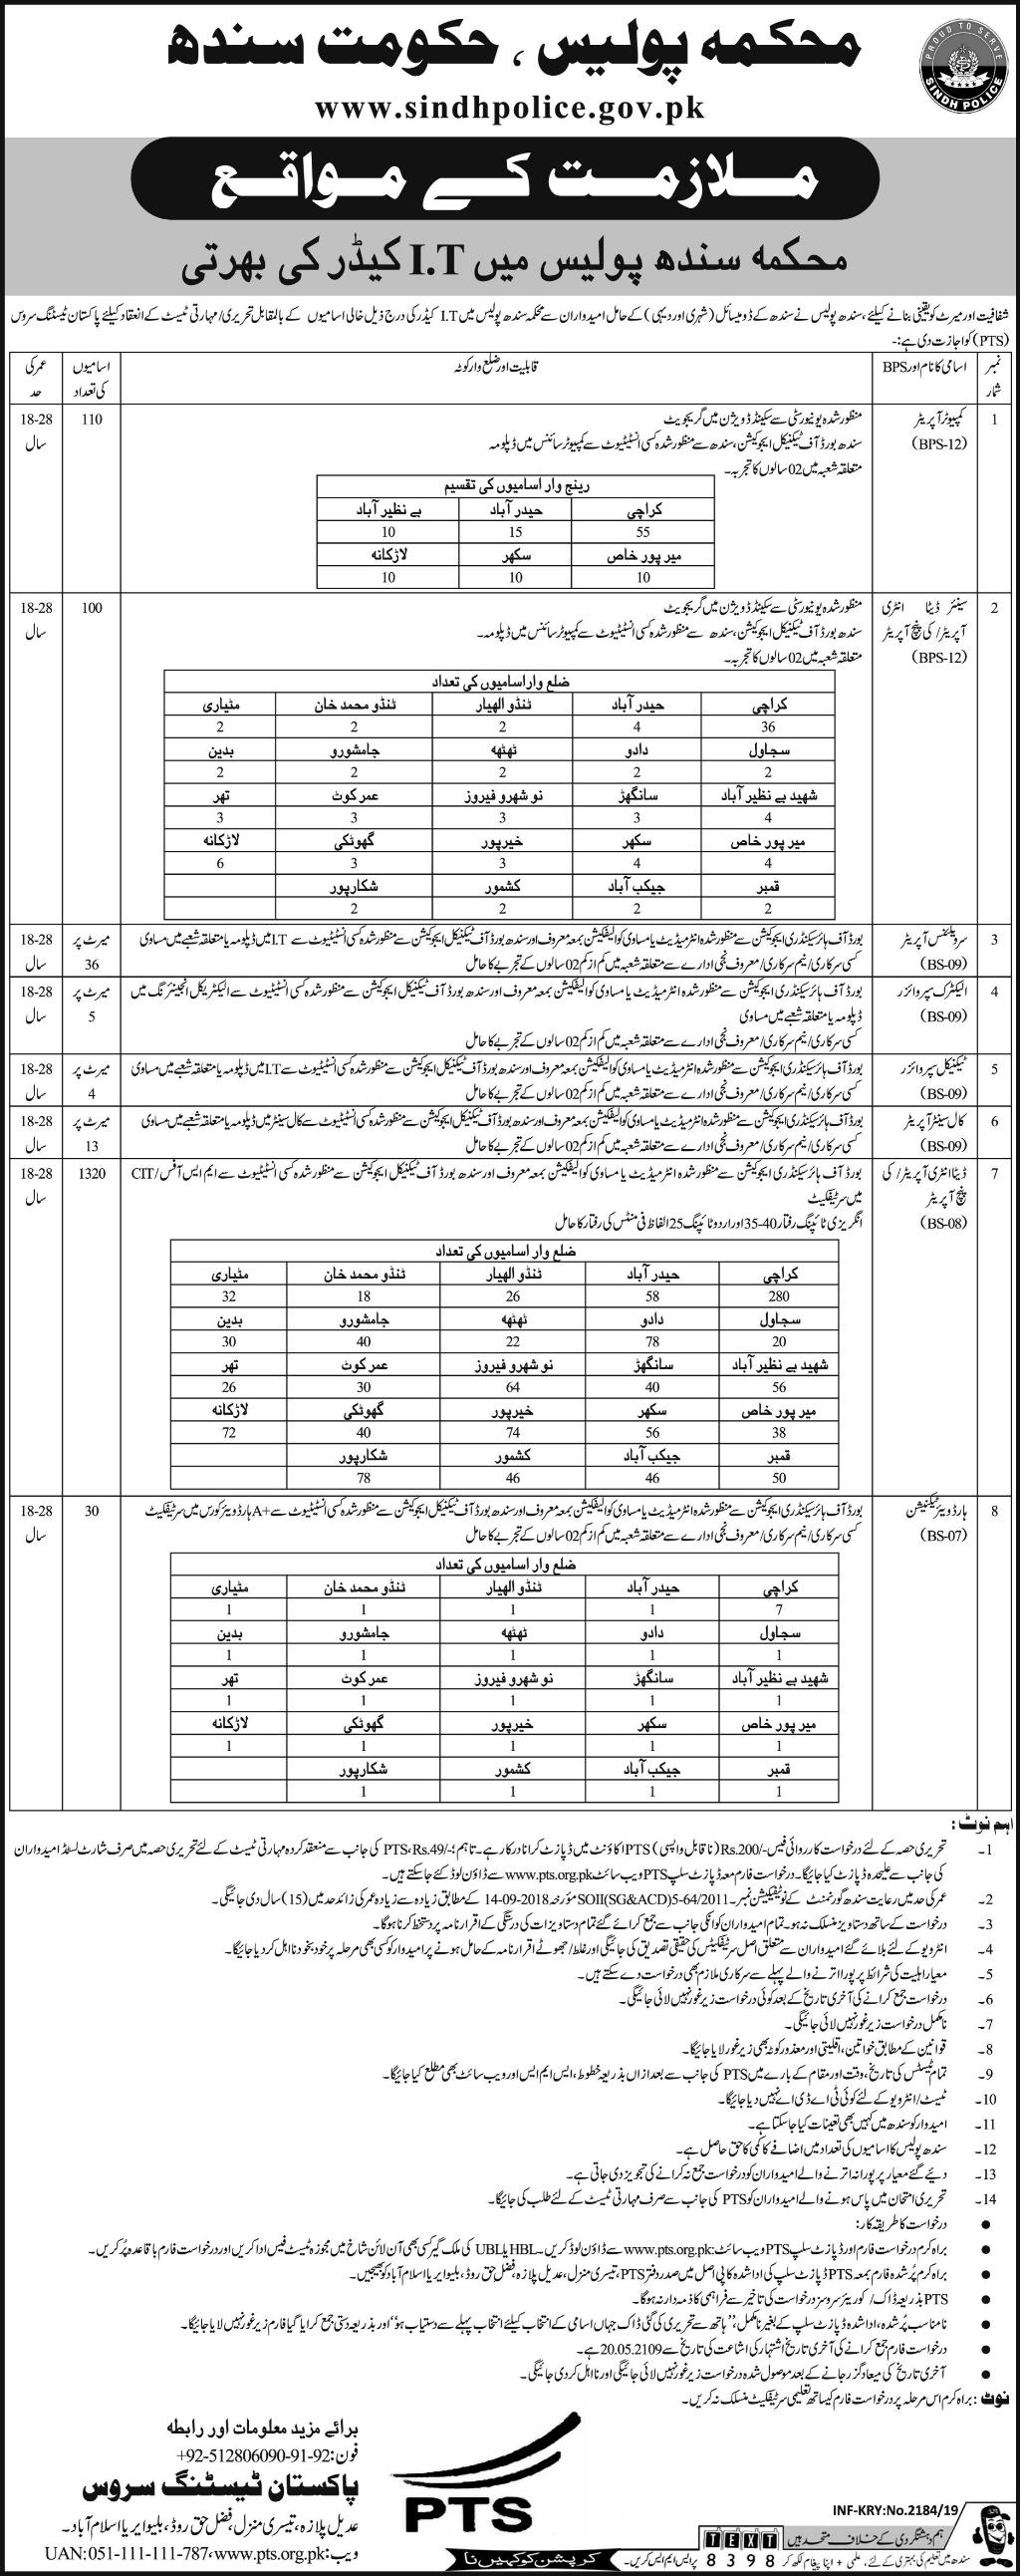 Sindh Police Jobs 2019. Sindh Government Sindh Police Jobs